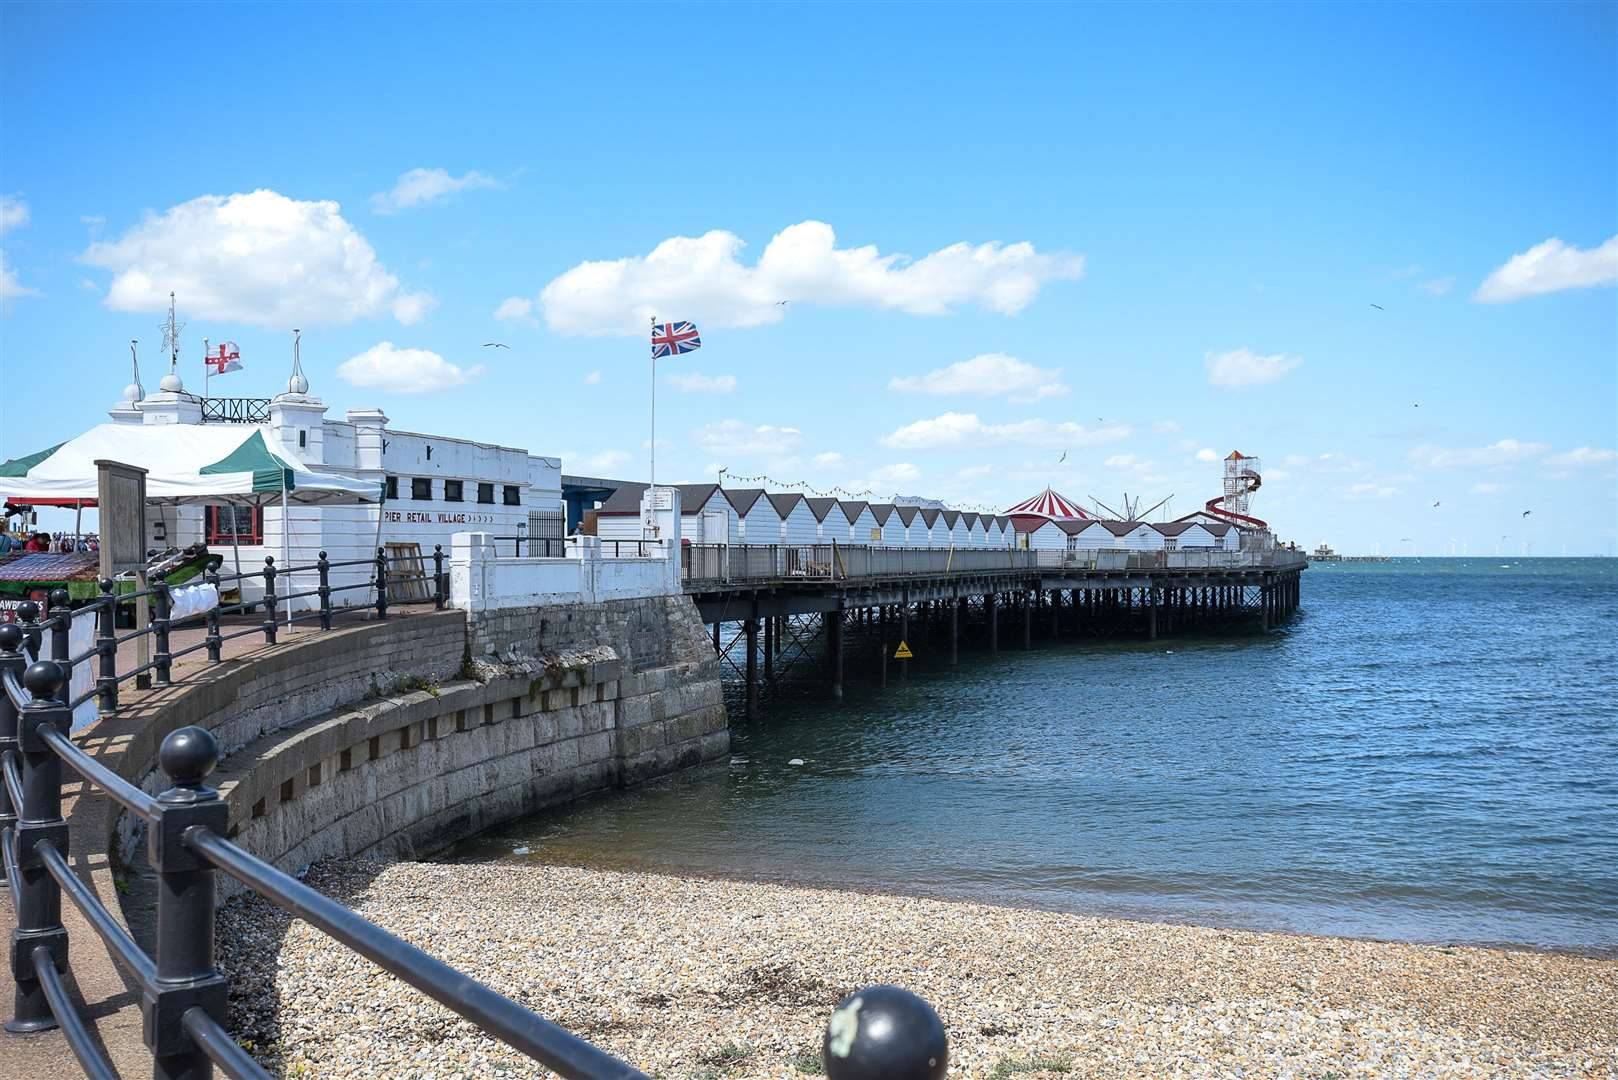 Multi-million-pound plans to extend Herne Bay Pier were revealed by bosses last week